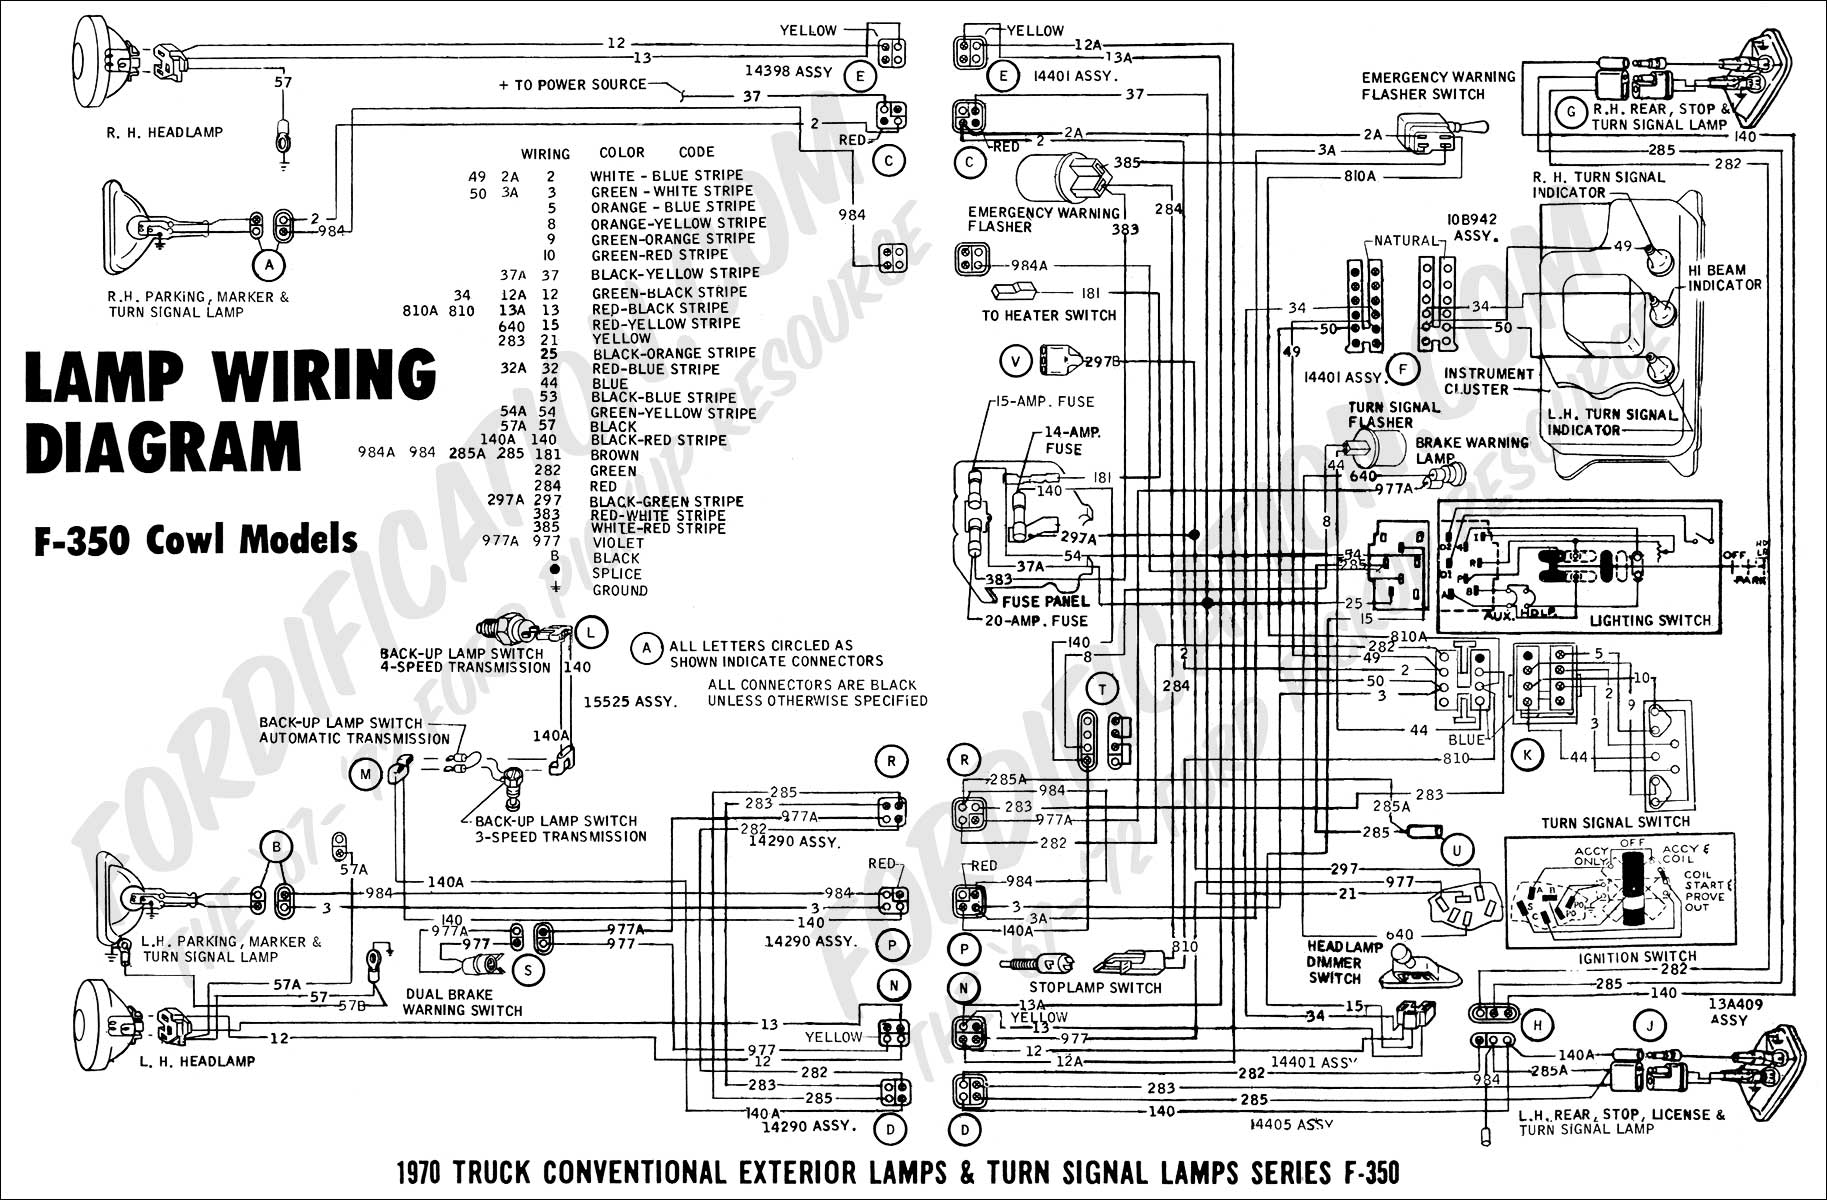 Ford F Wiring Diagram on 02 toyota celica wiring diagram, 02 toyota tundra wiring diagram, 02 hyundai accent wiring diagram, 02 toyota highlander wiring diagram, 02 bmw x5 wiring diagram, 02 buick century wiring diagram, 02 mazda tribute wiring diagram, 02 dodge ram wiring diagram, 02 subaru impreza wiring diagram, 02 nissan frontier wiring diagram, 02 gmc sierra wiring diagram, 02 jeep liberty wiring diagram, 02 chevrolet blazer wiring diagram, 02 chevy silverado wiring diagram, 02 jeep grand cherokee wiring diagram,